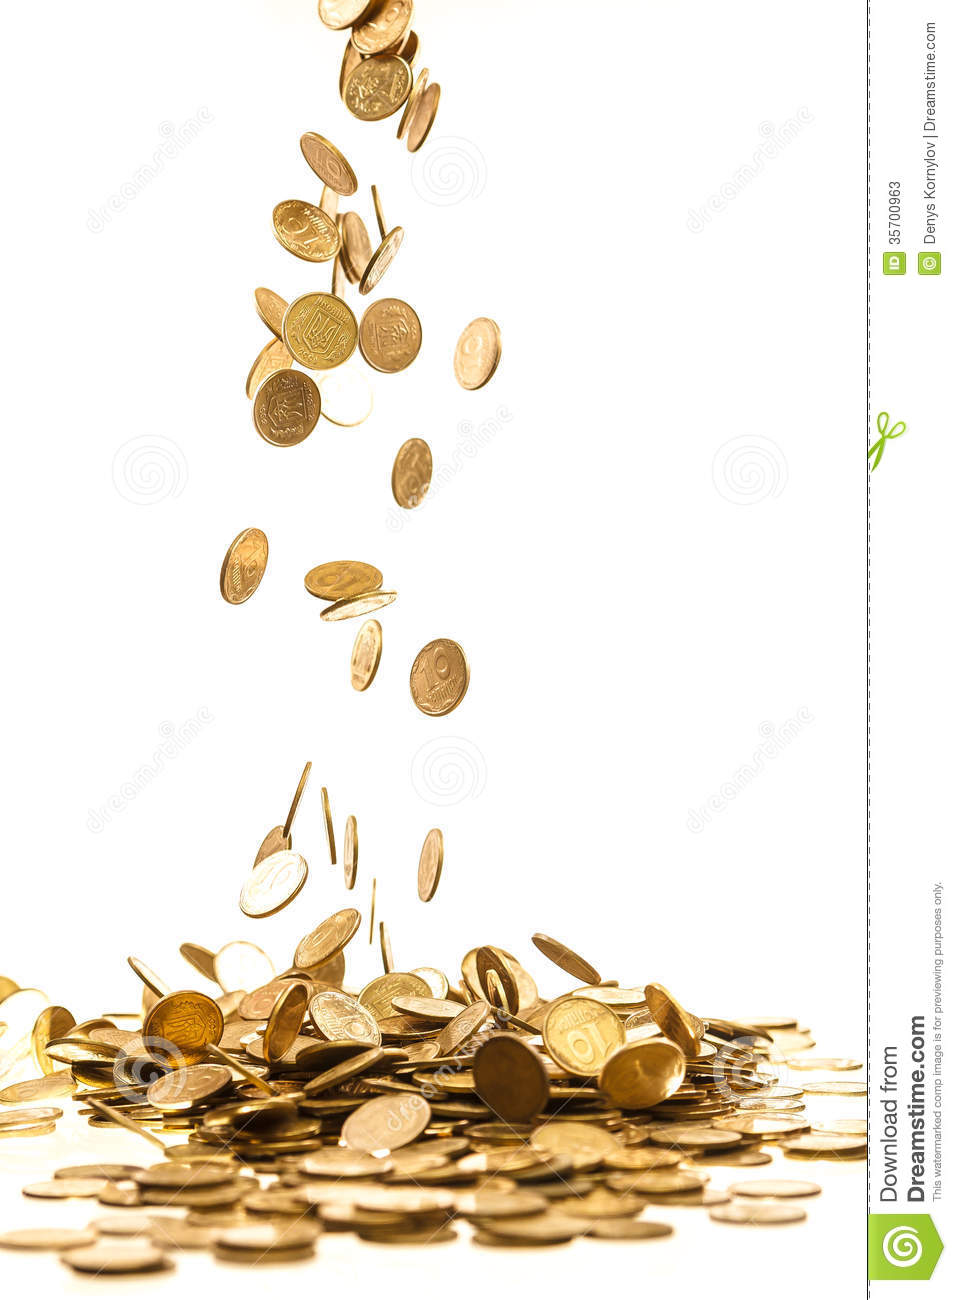 Falling coins stock image. Image of gold, earnings, money - 35700963